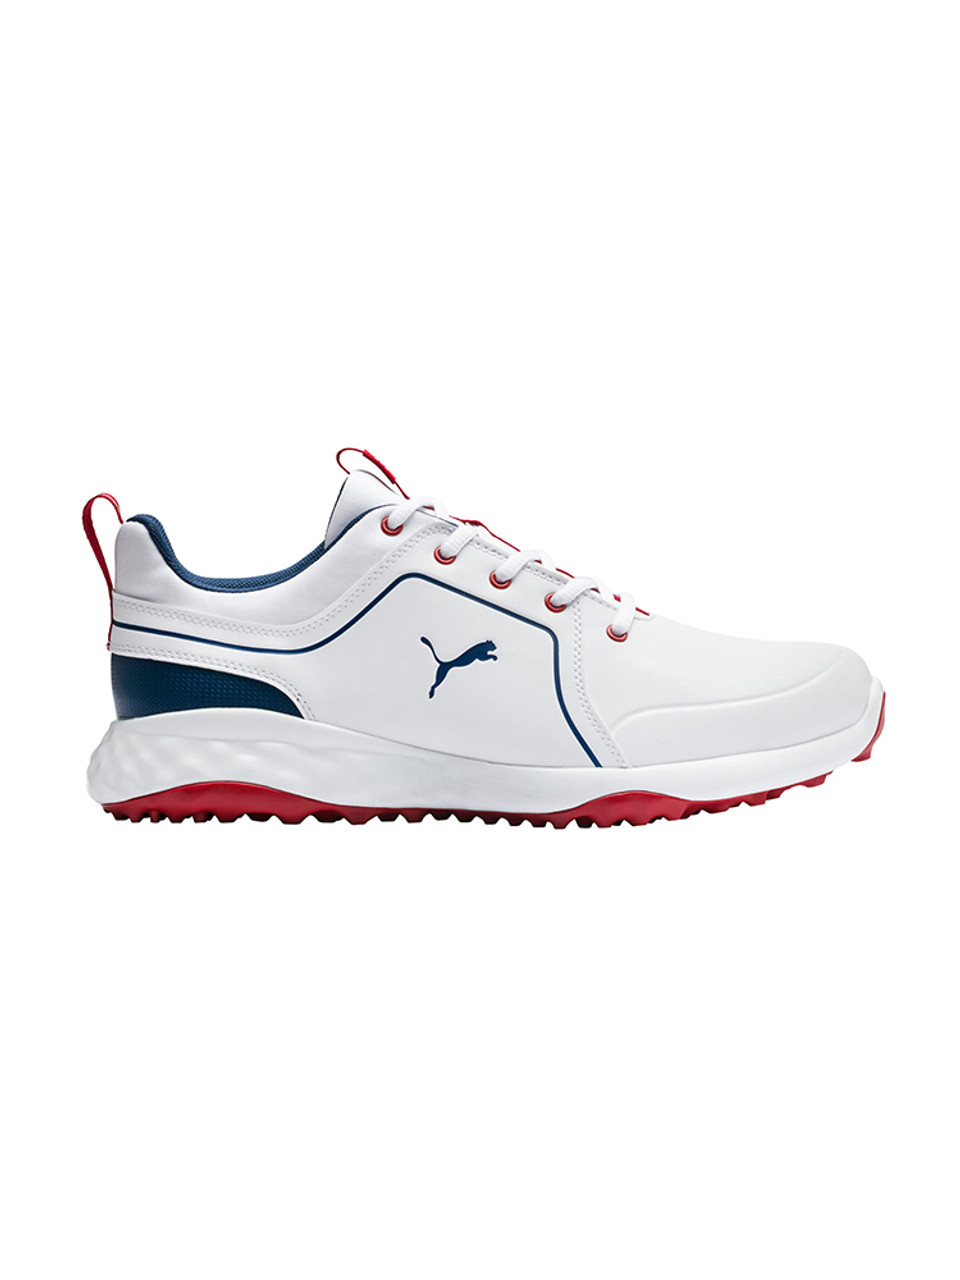 Puma Grip Fusion 2.0 Golf Shoes Puma WhiteDark Denim